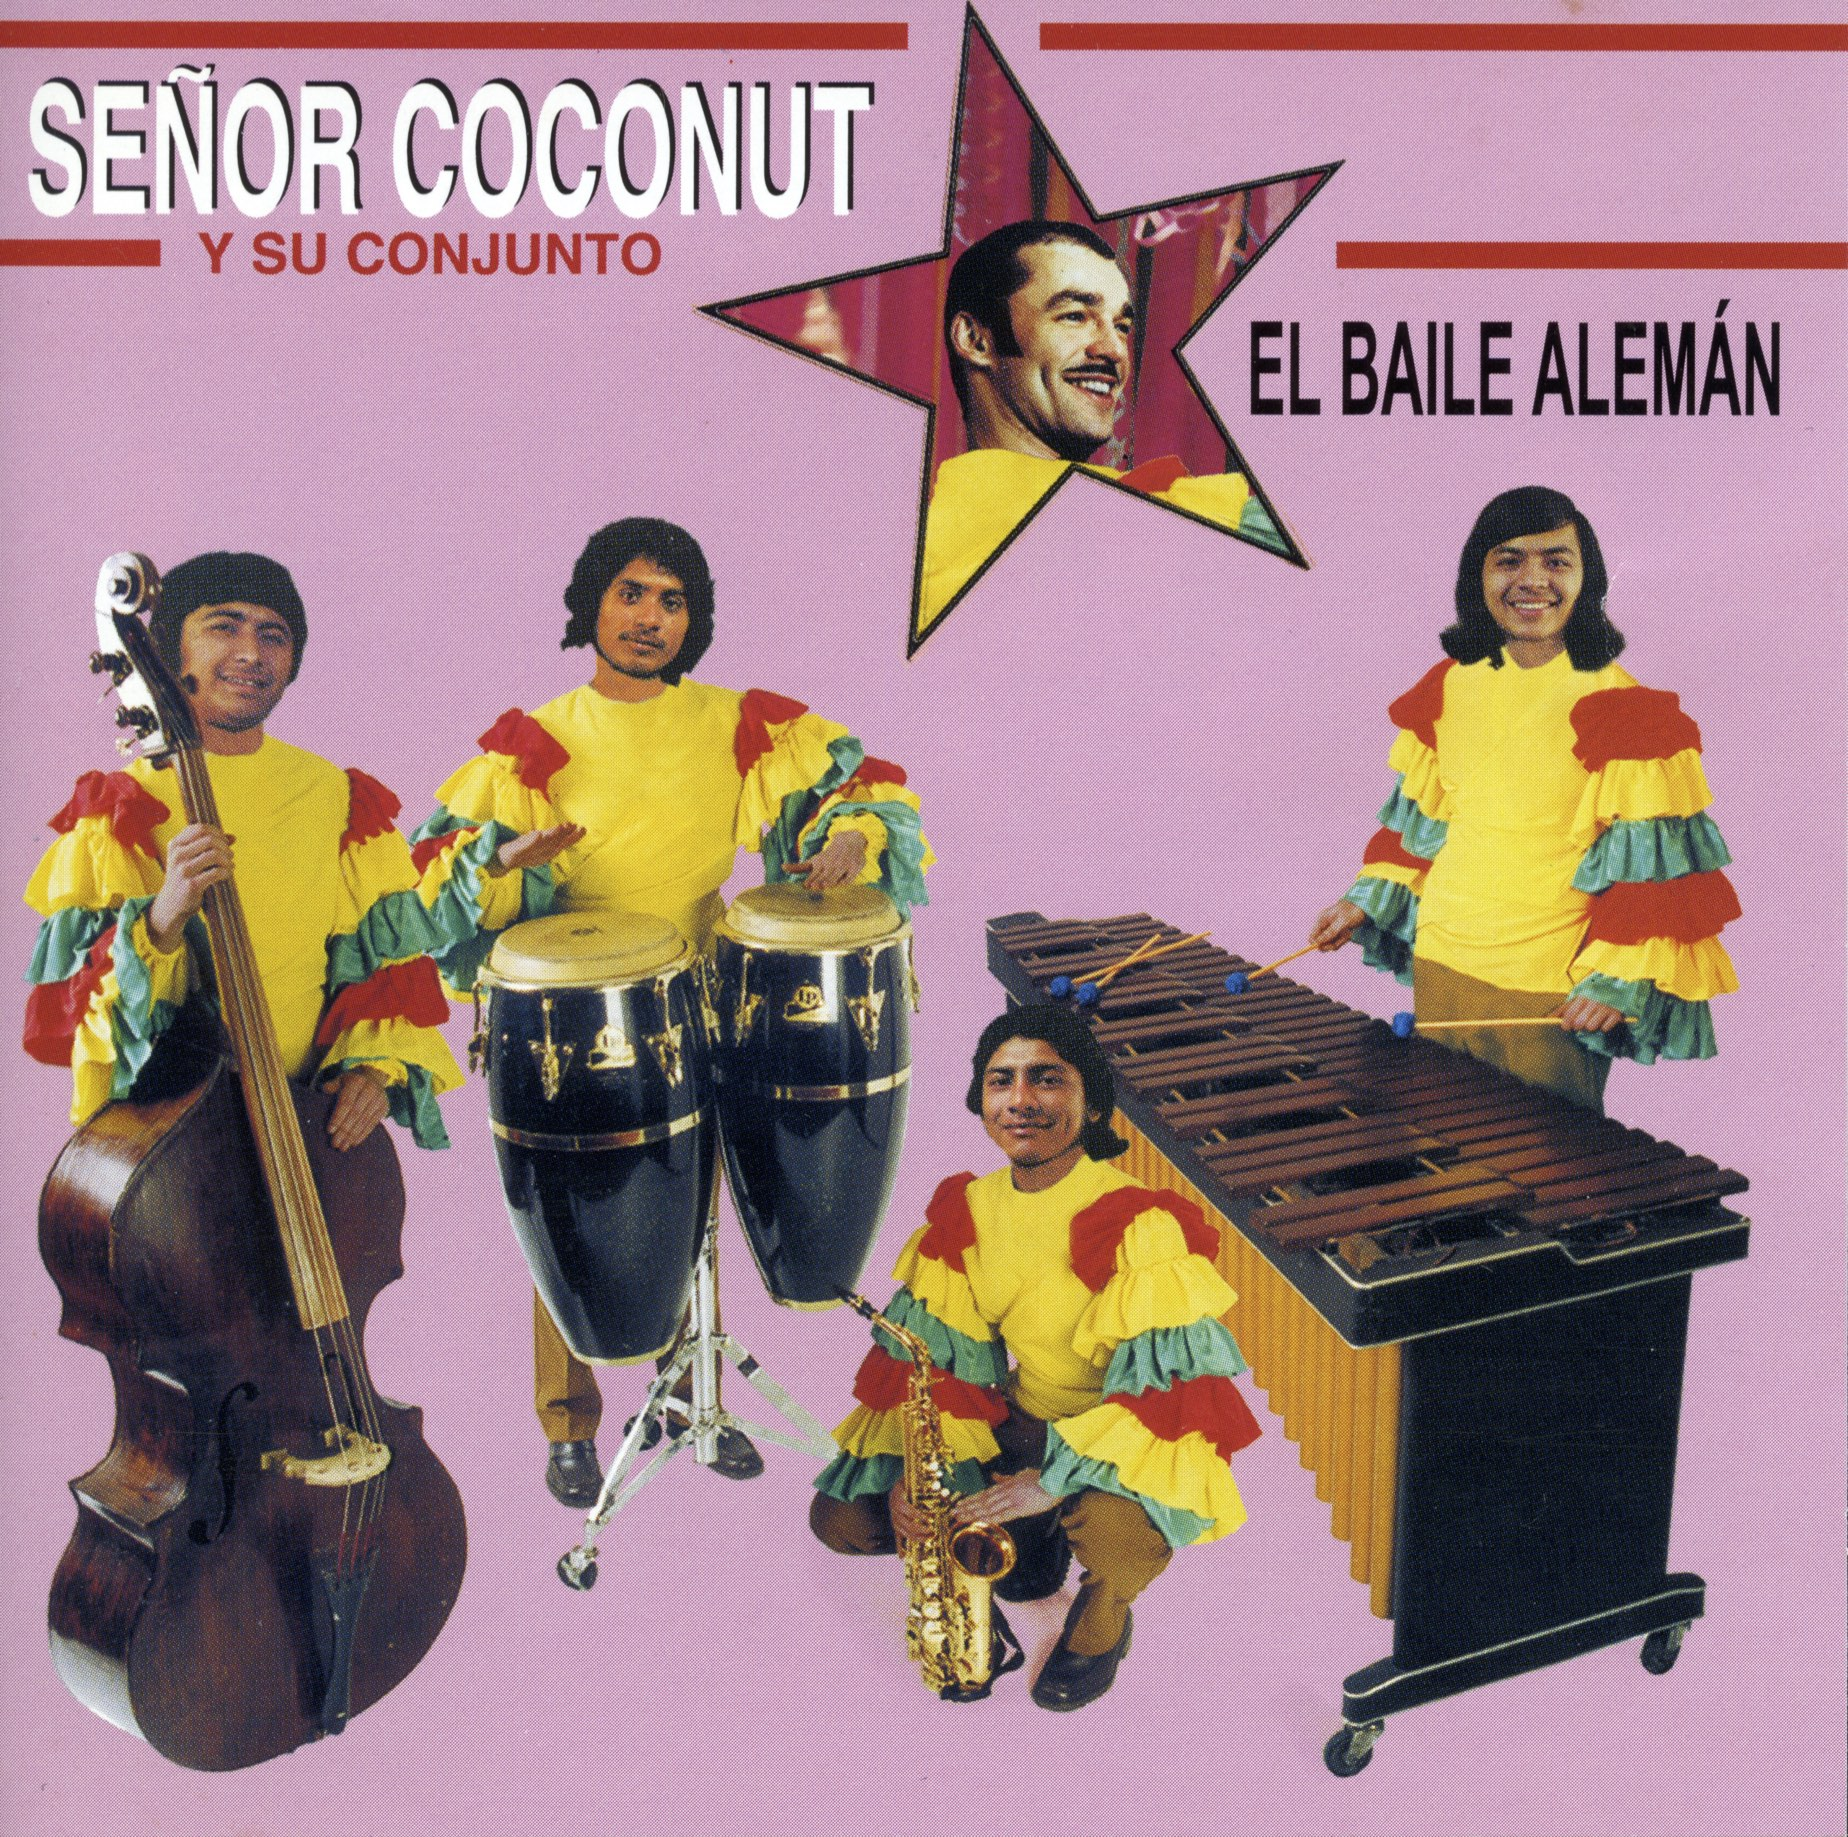 1999 - Senor Coconut